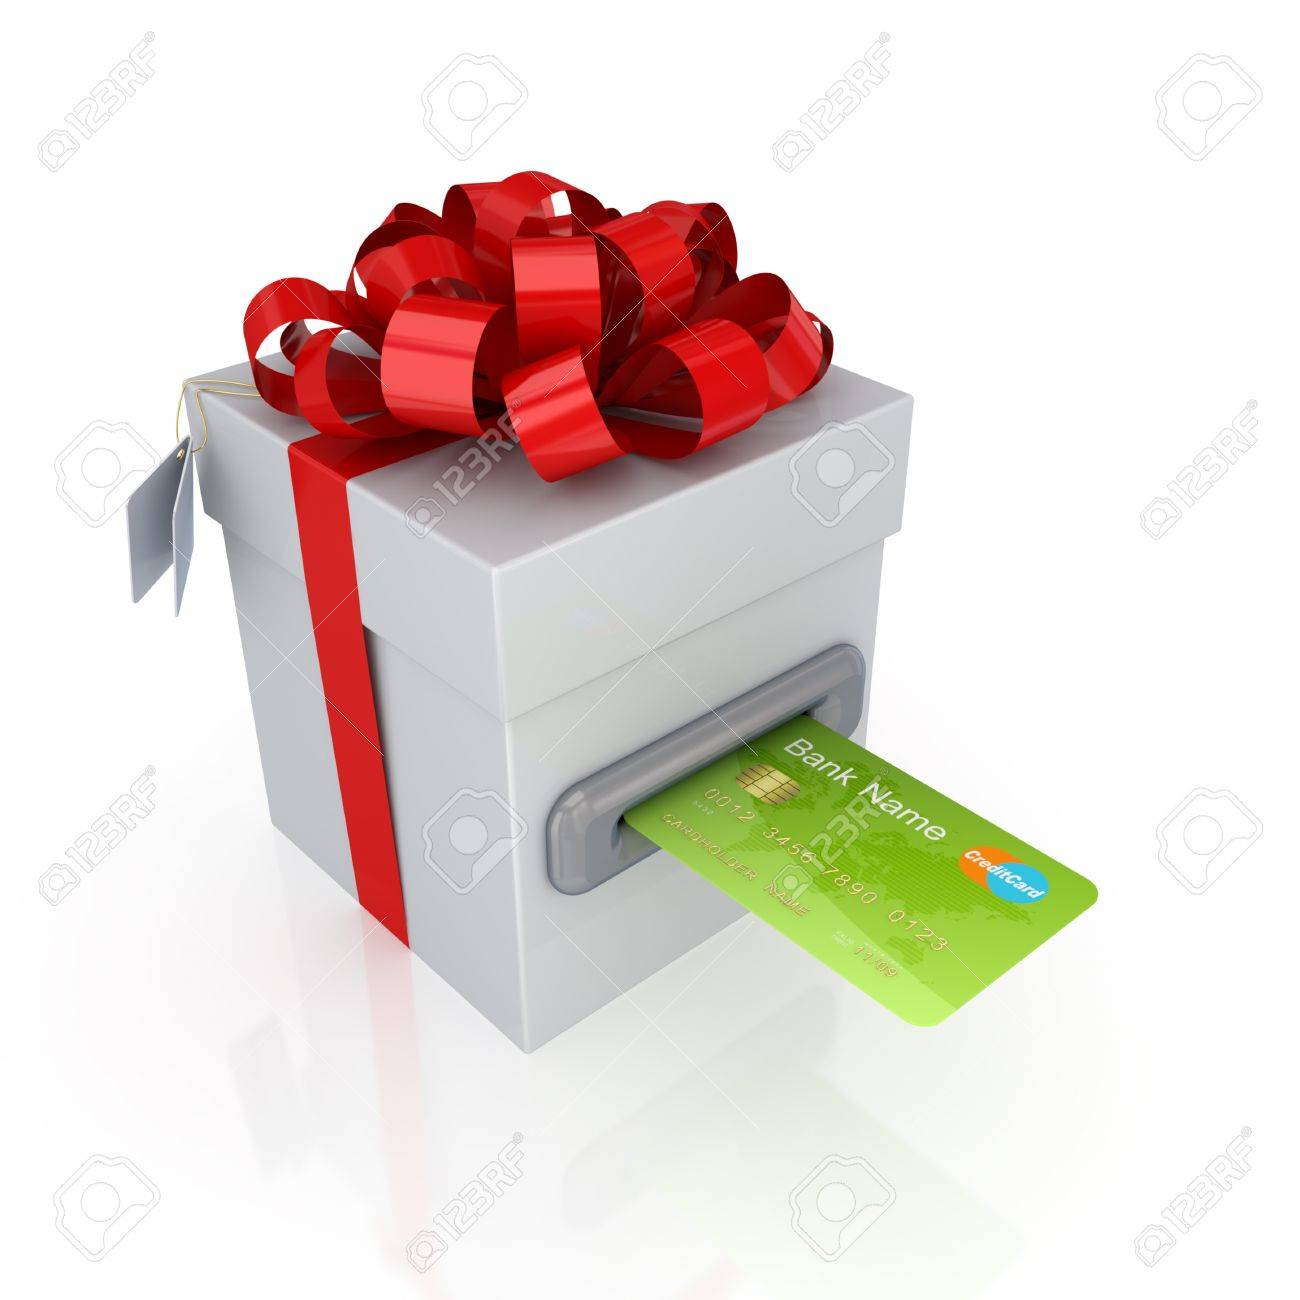 Green credit card and gift box.Isolated on white background.3d rendered. Stock Photo - 12222731